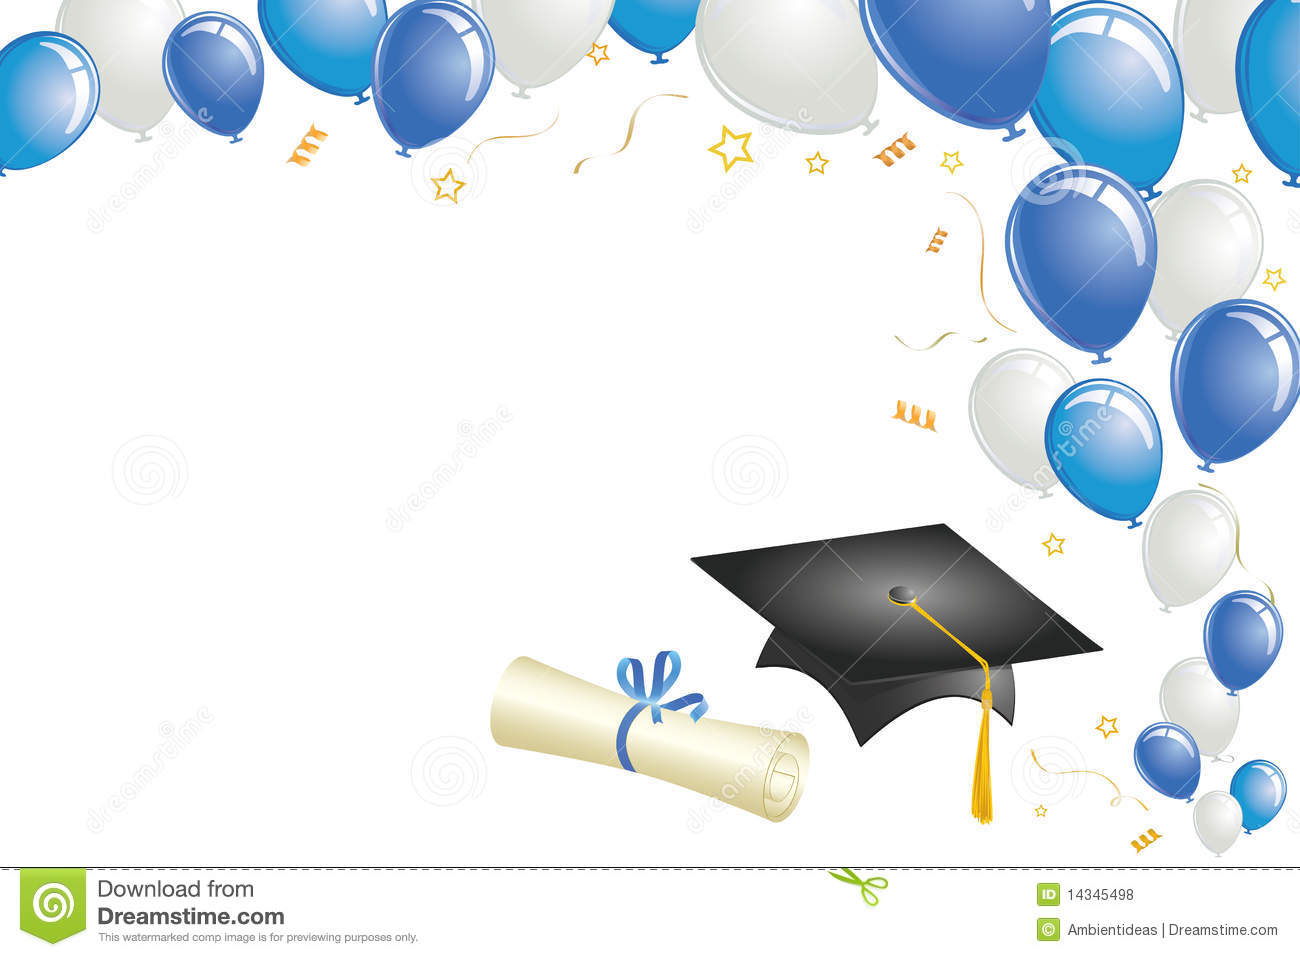 ... Borders graduation design with blue balloons royalty free stock: galleryhip.com/blue-graduation-borders.html